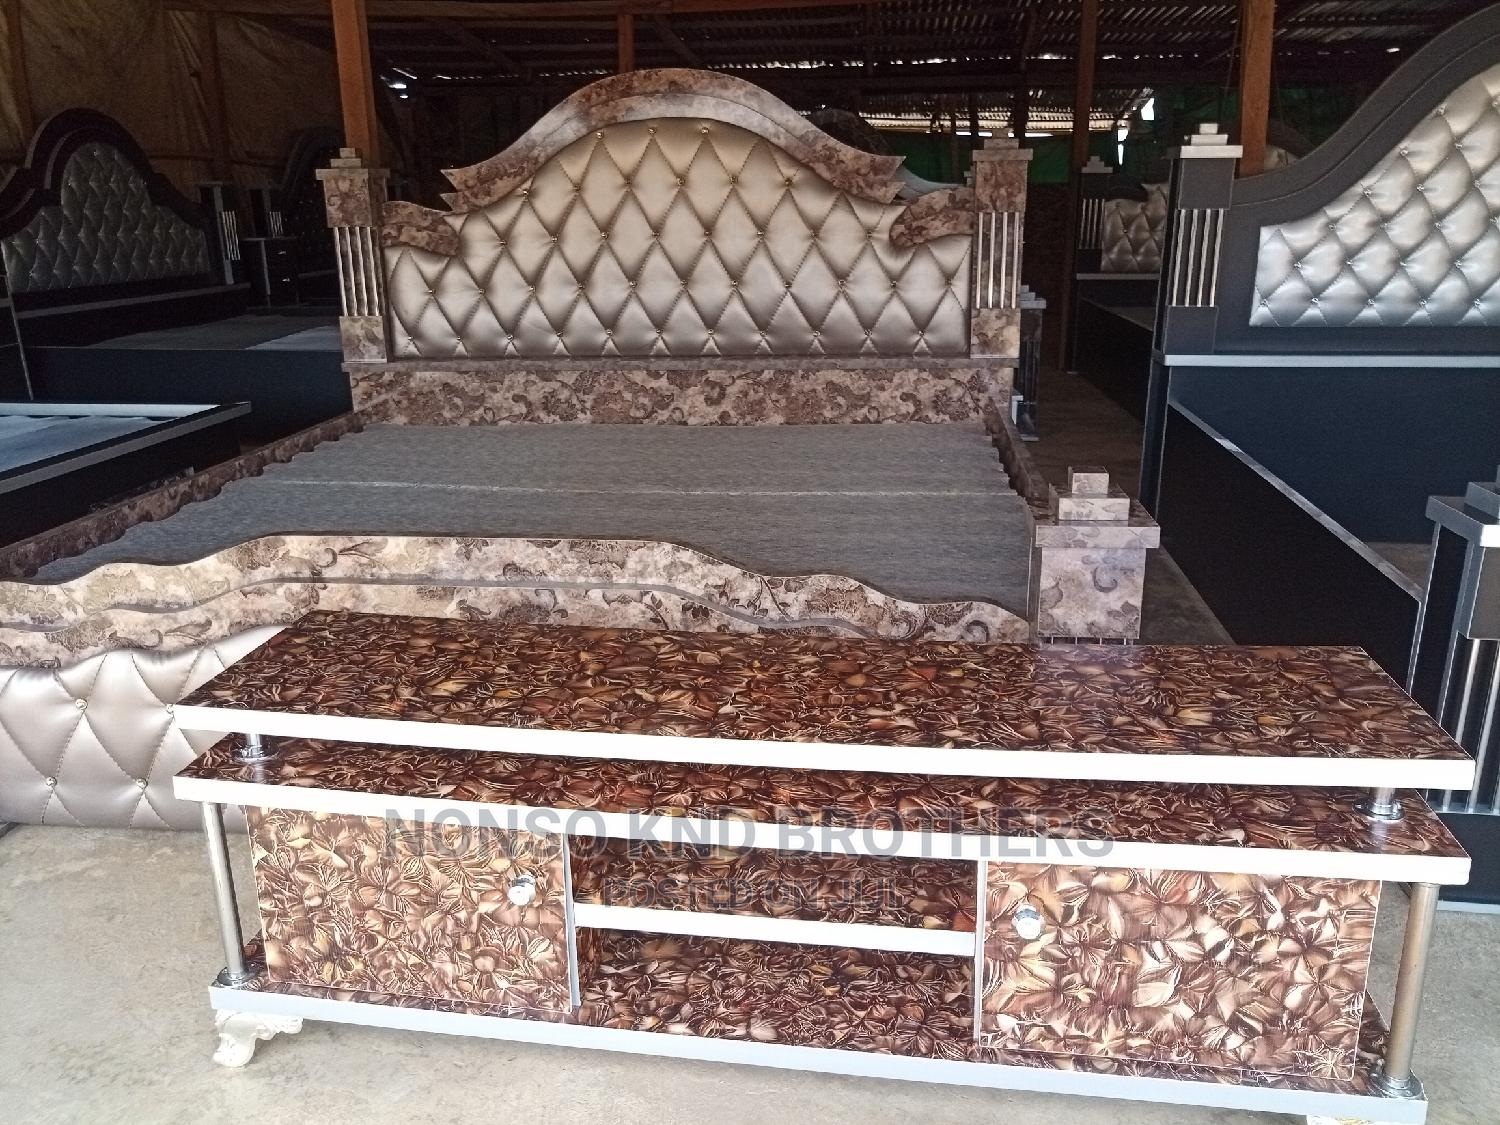 Archive: Normal Bed and Piller Bed